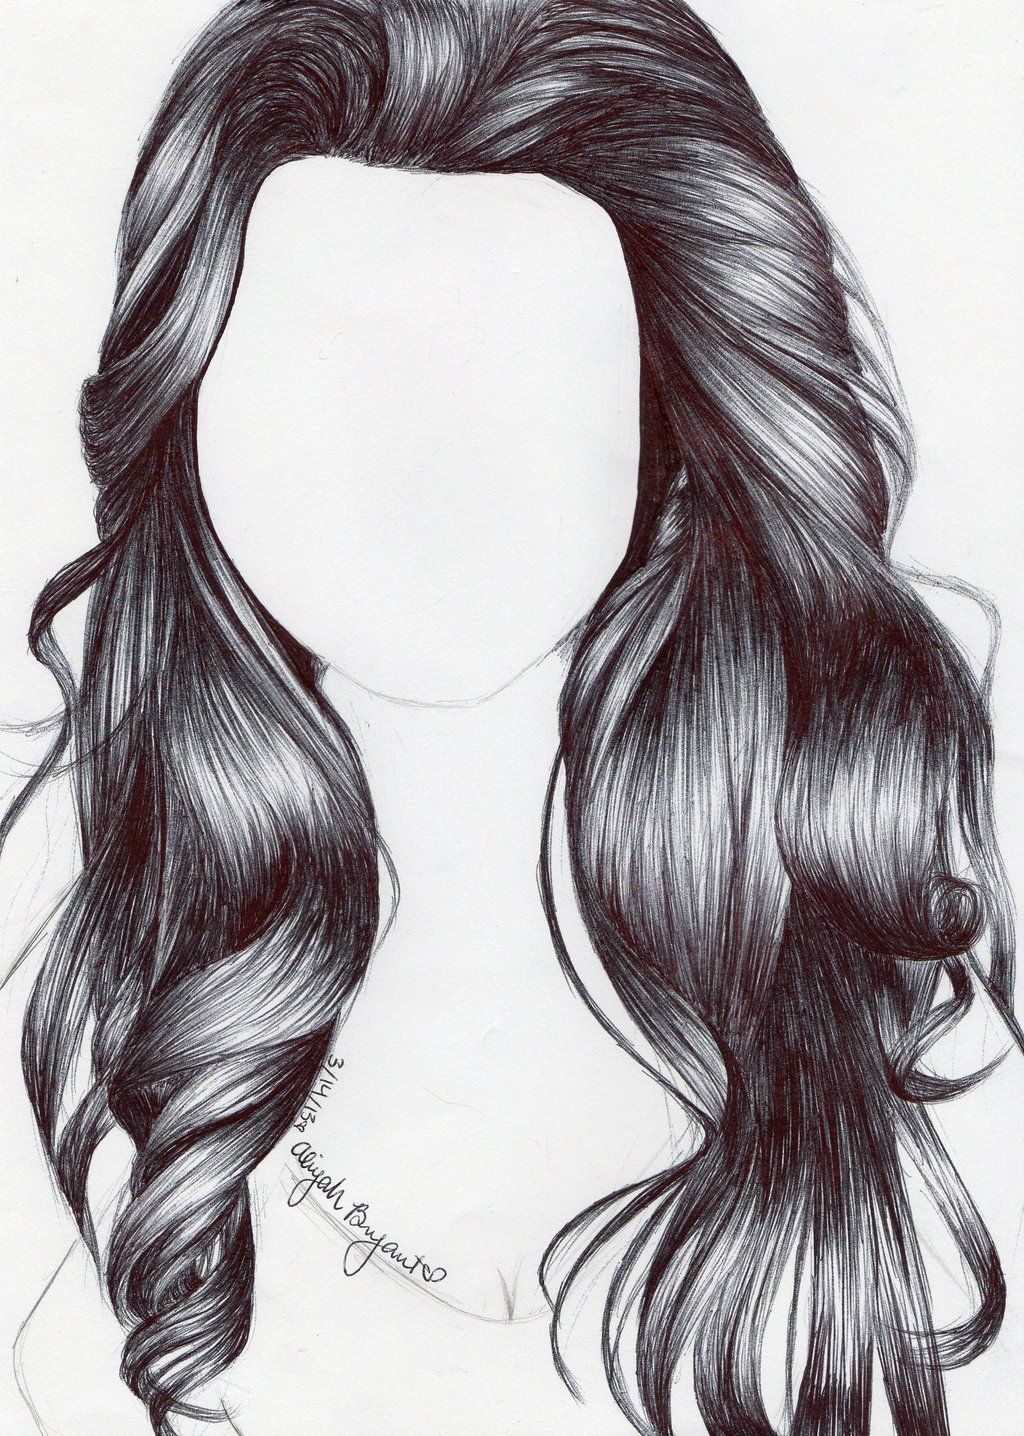 Hair Pencil Drawing Www Imgkid The Image Kid Has It How To Draw Hair Realistic Hair Drawing Pencil Drawings